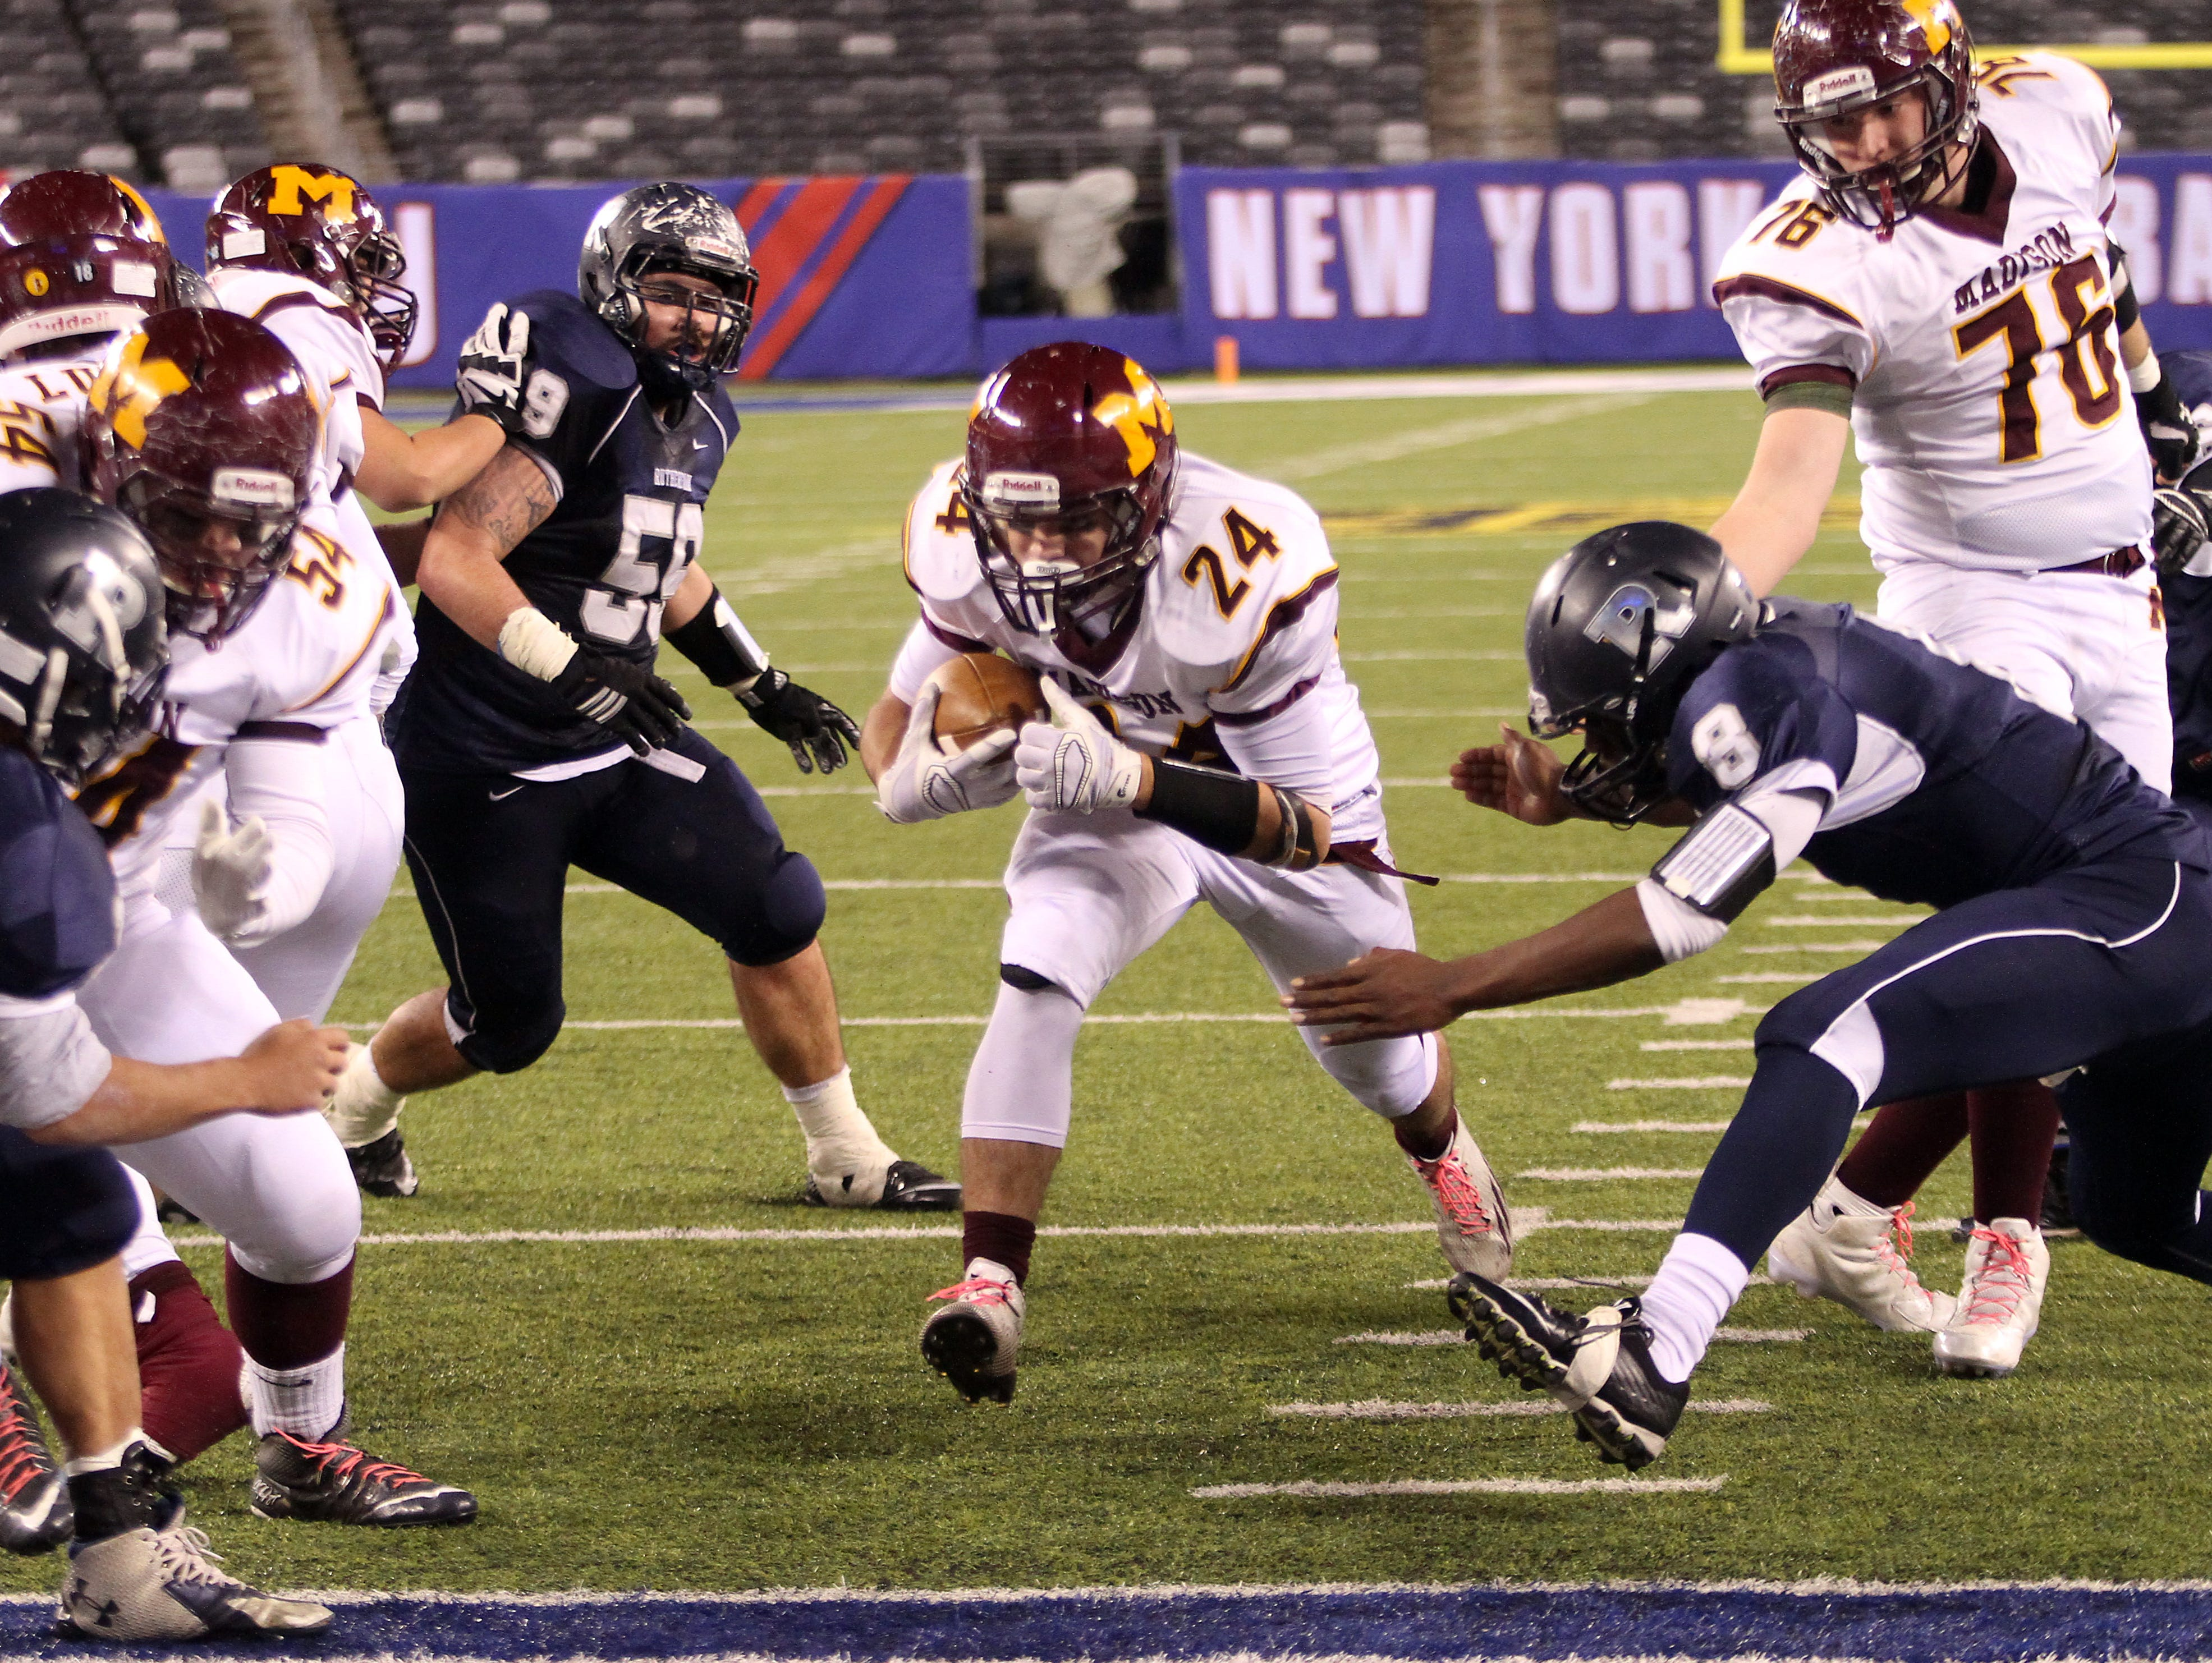 Madison's P.J. Mulcahy heads into the end zone vs. Rutherford in the second half during the North 2, Group 2 NJSIAA football Championship at MetLife Stadium. Madison won 27-6. December 3, 2015, East Rutherford, NJ.